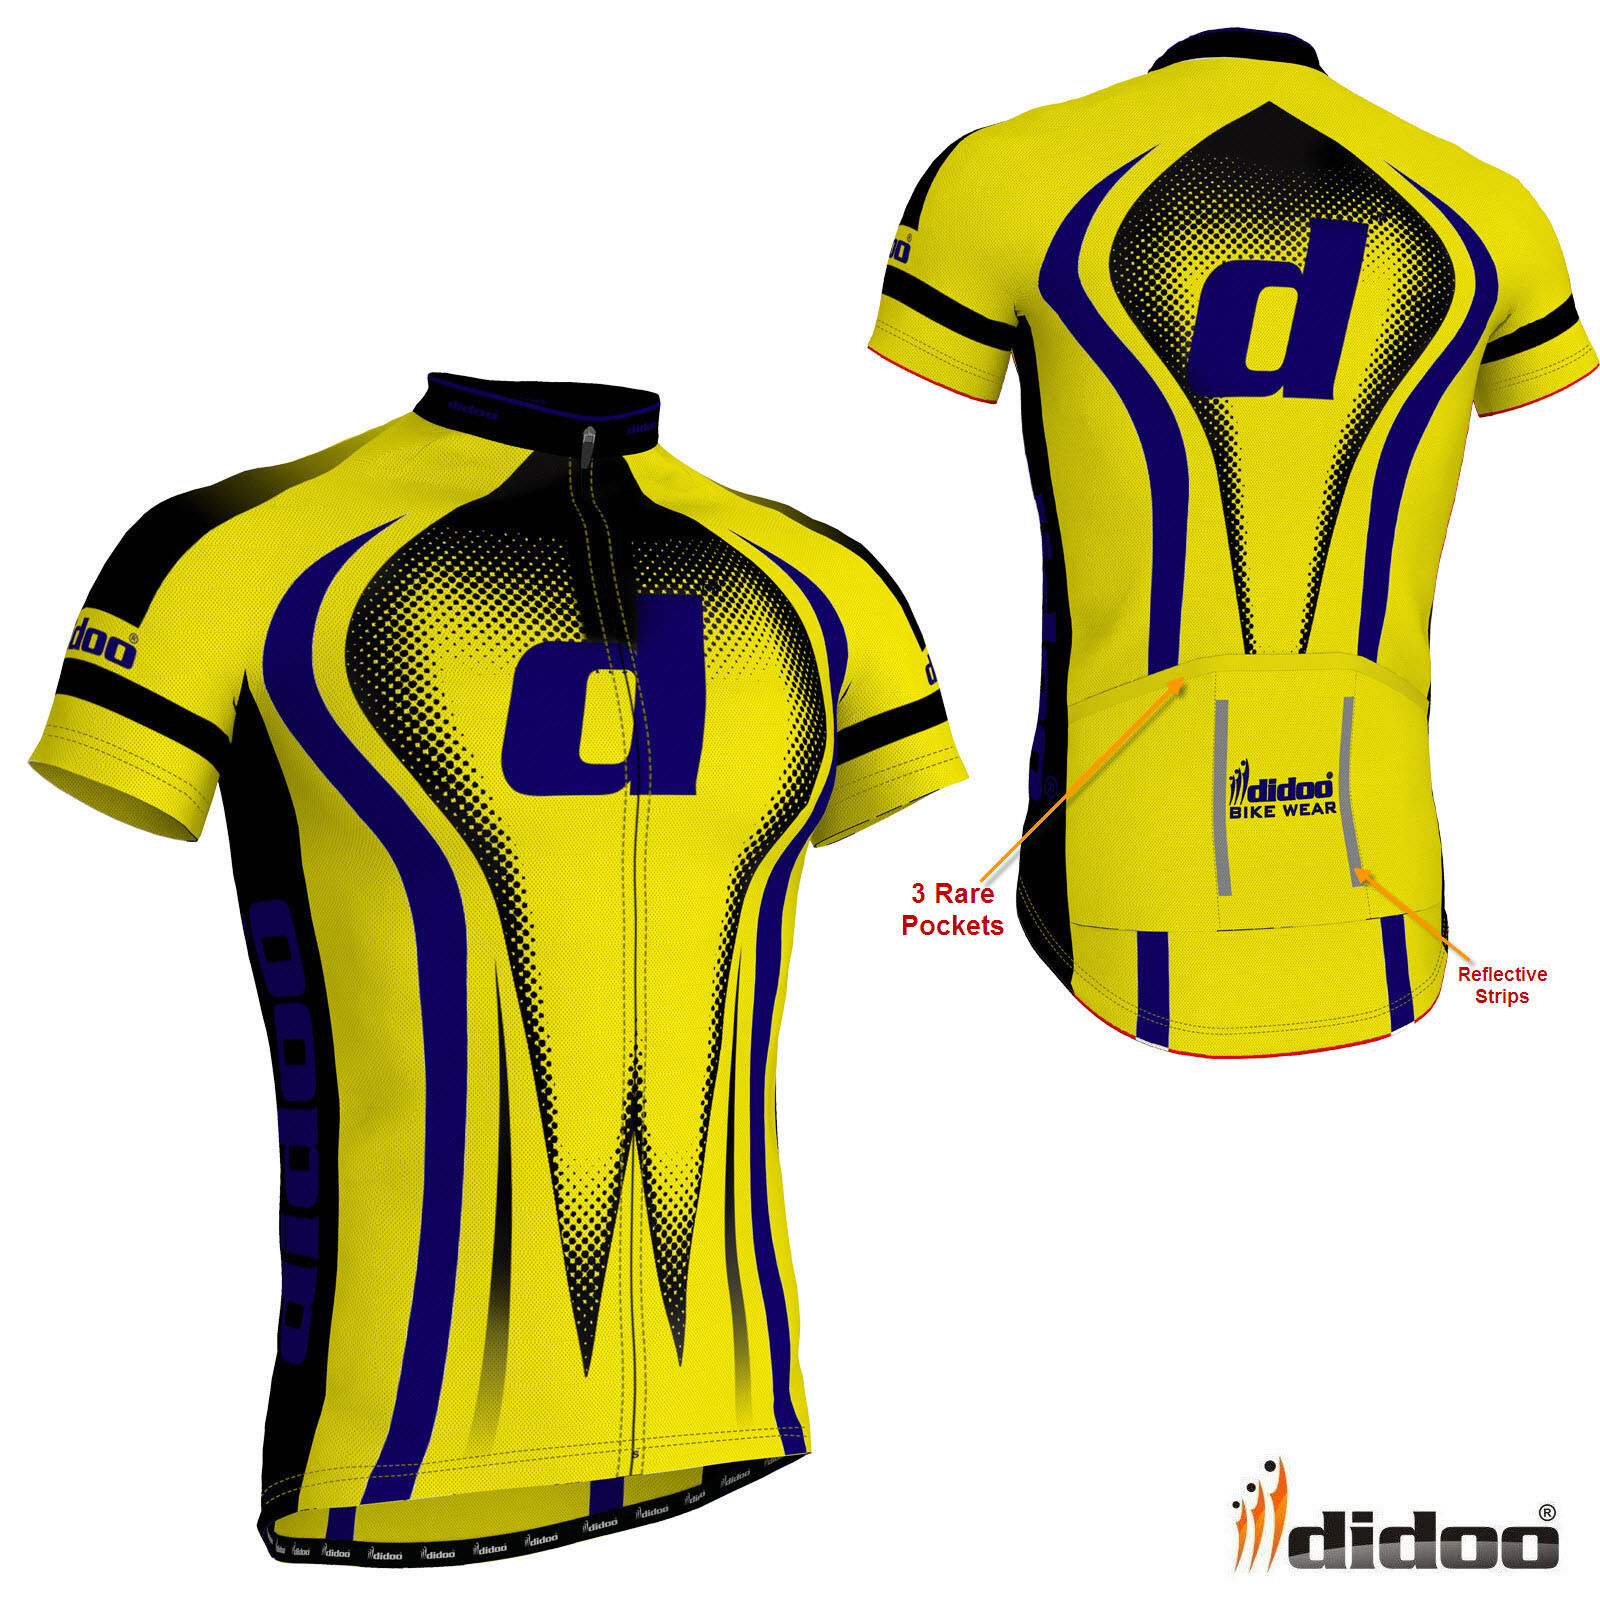 72d0bf363 Details about Didoo New Men s Cycling Half Sleeve Shirt Jersey Top Bicycle  Team Uniform Jacket